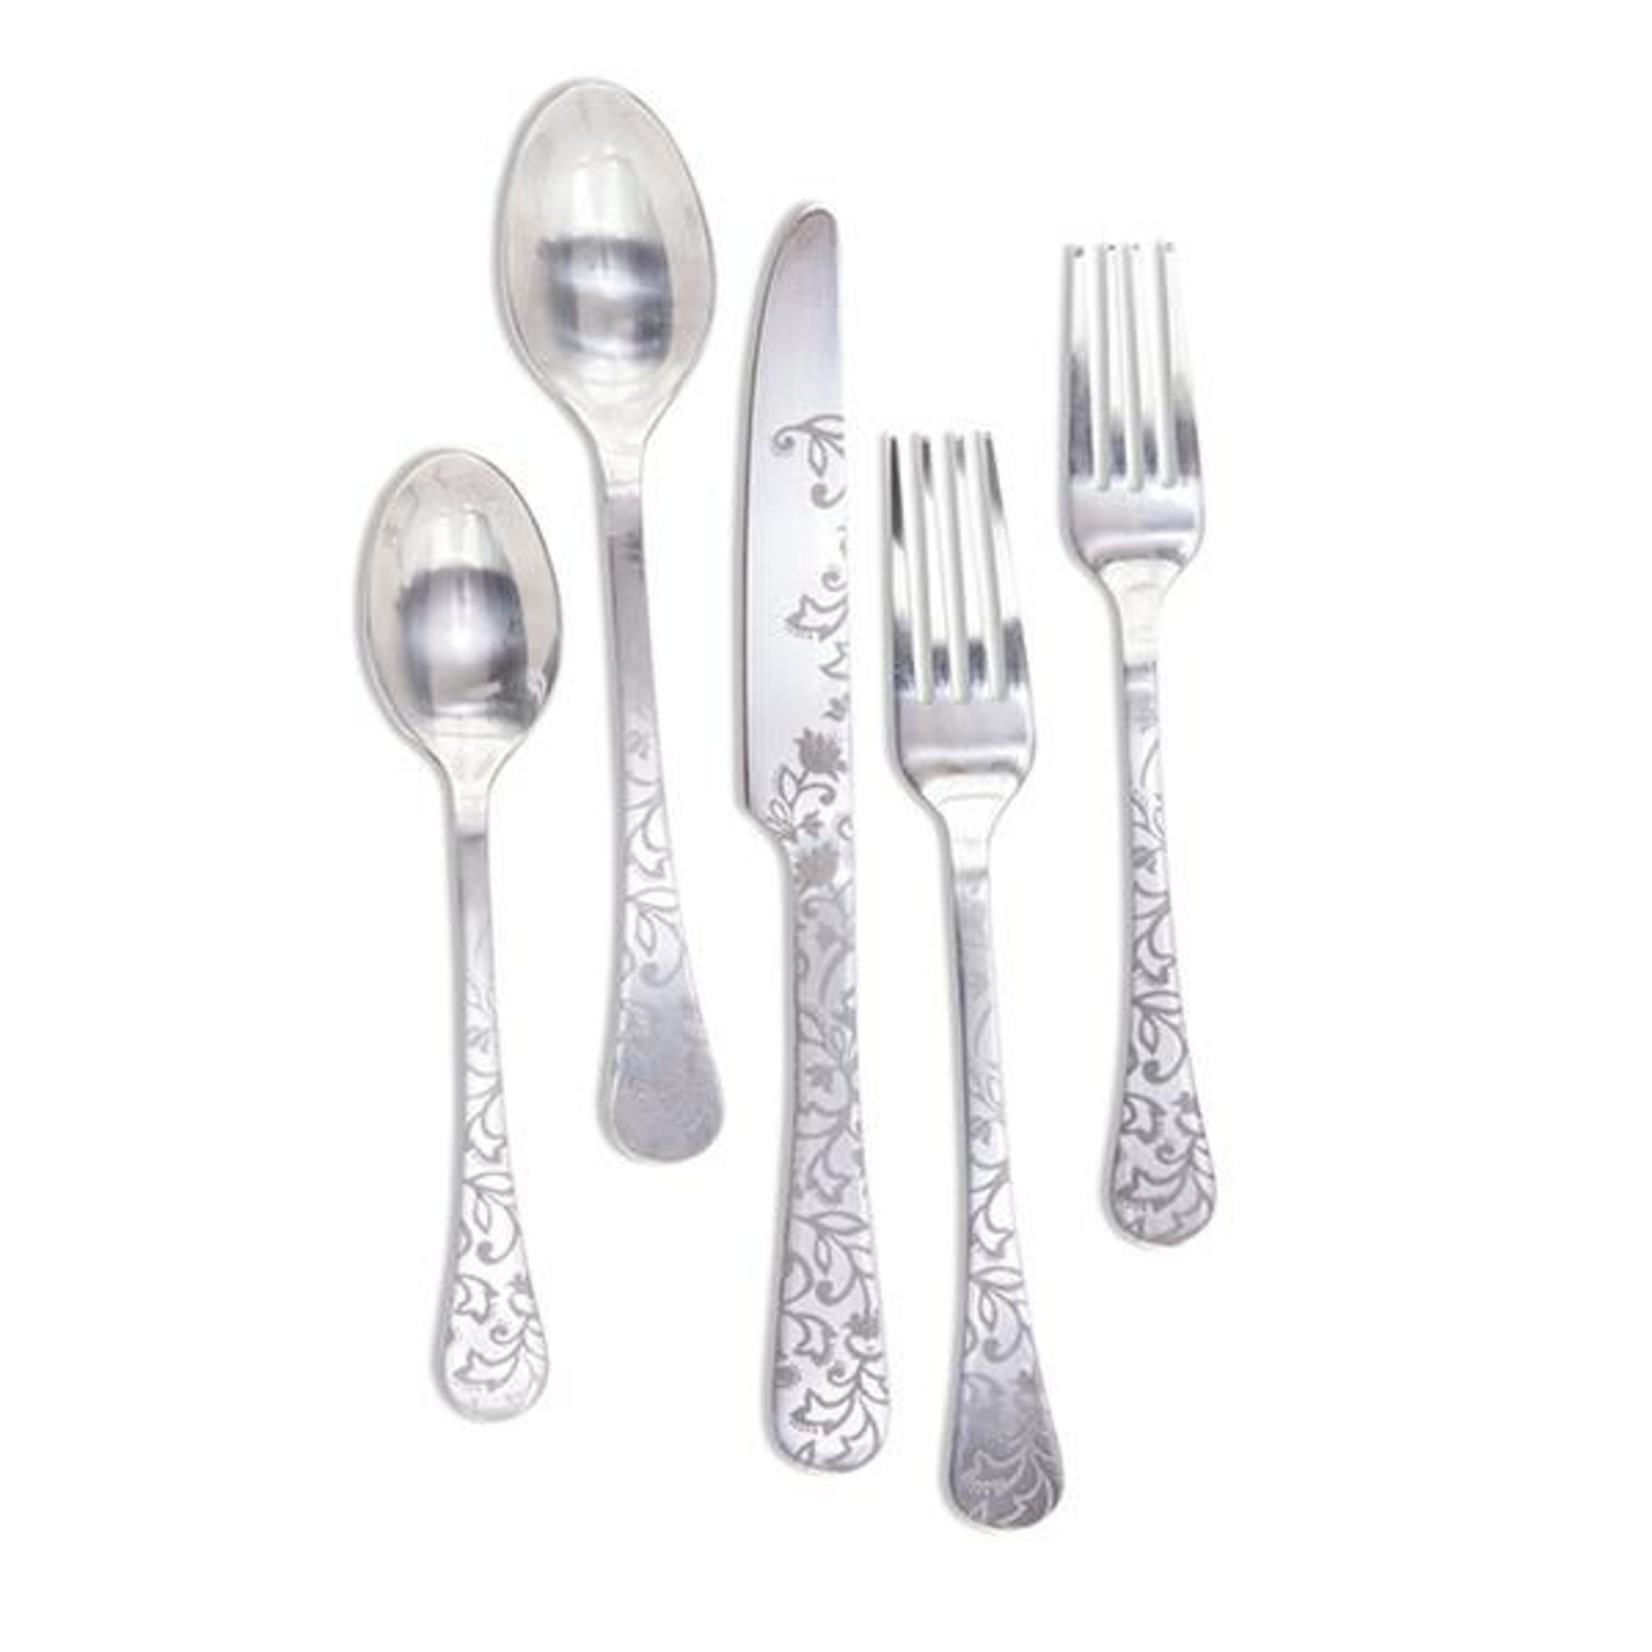 The GG Collection Silver Floral Flatware 5 pc. - Set of 2